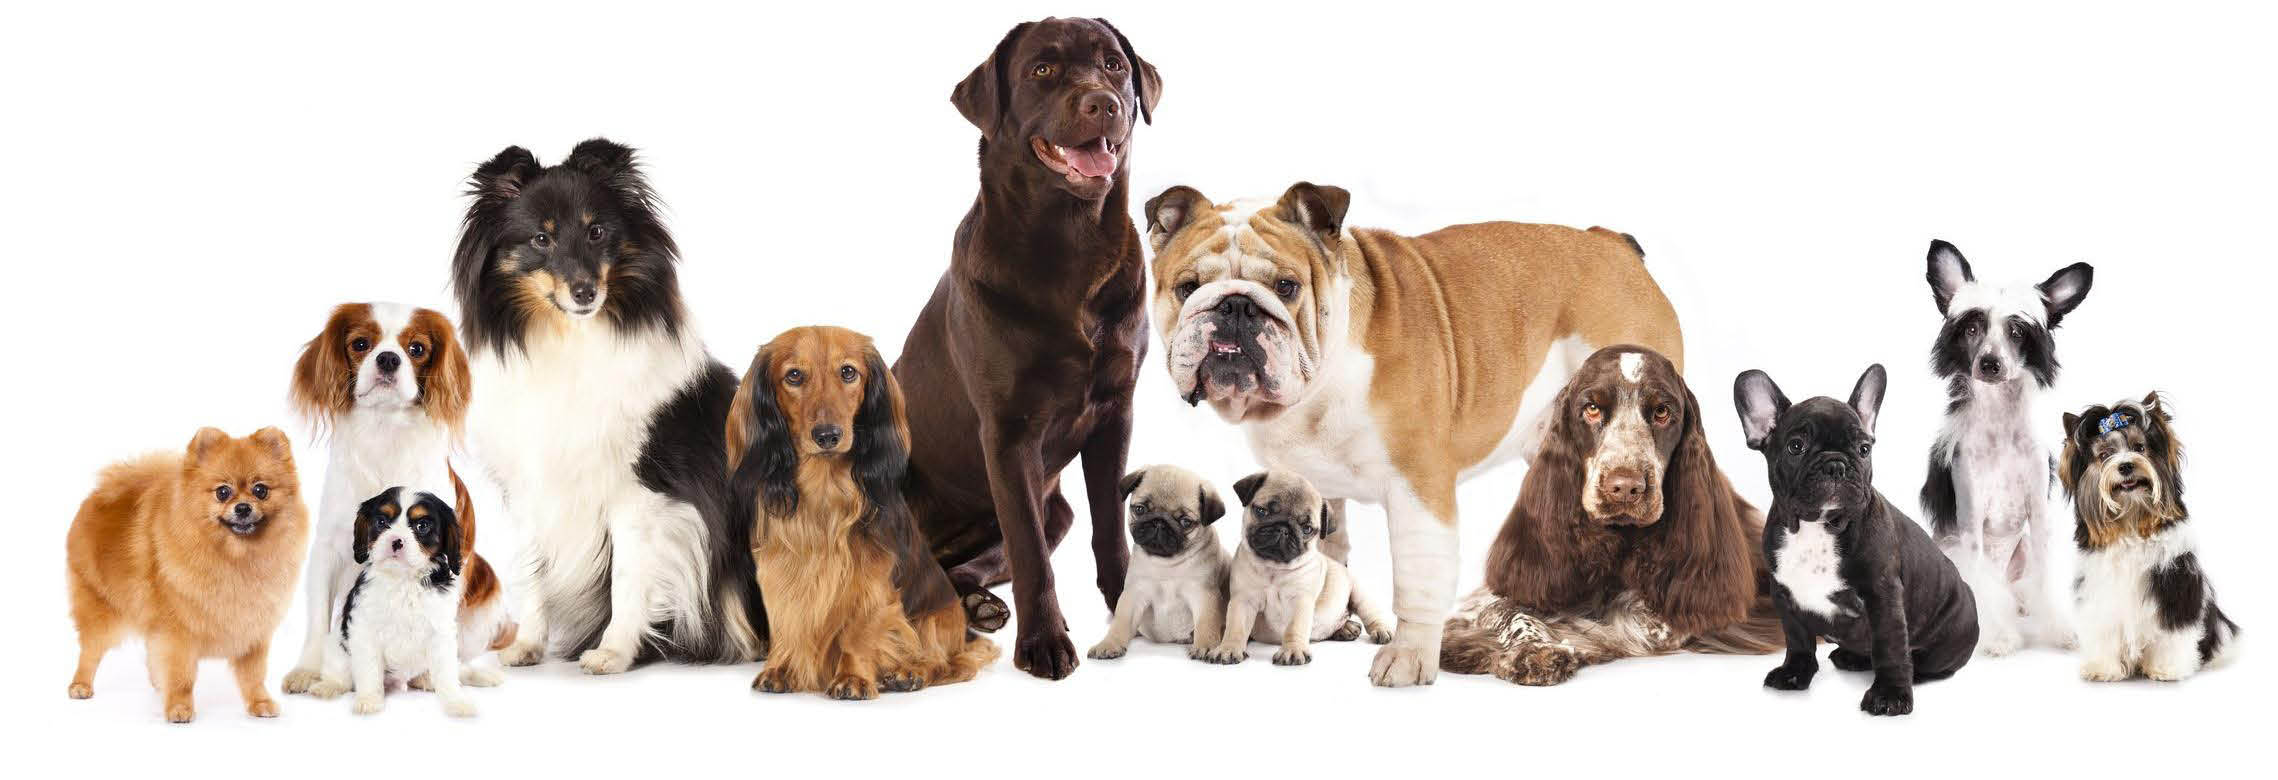 Dog Food And Supplies Online